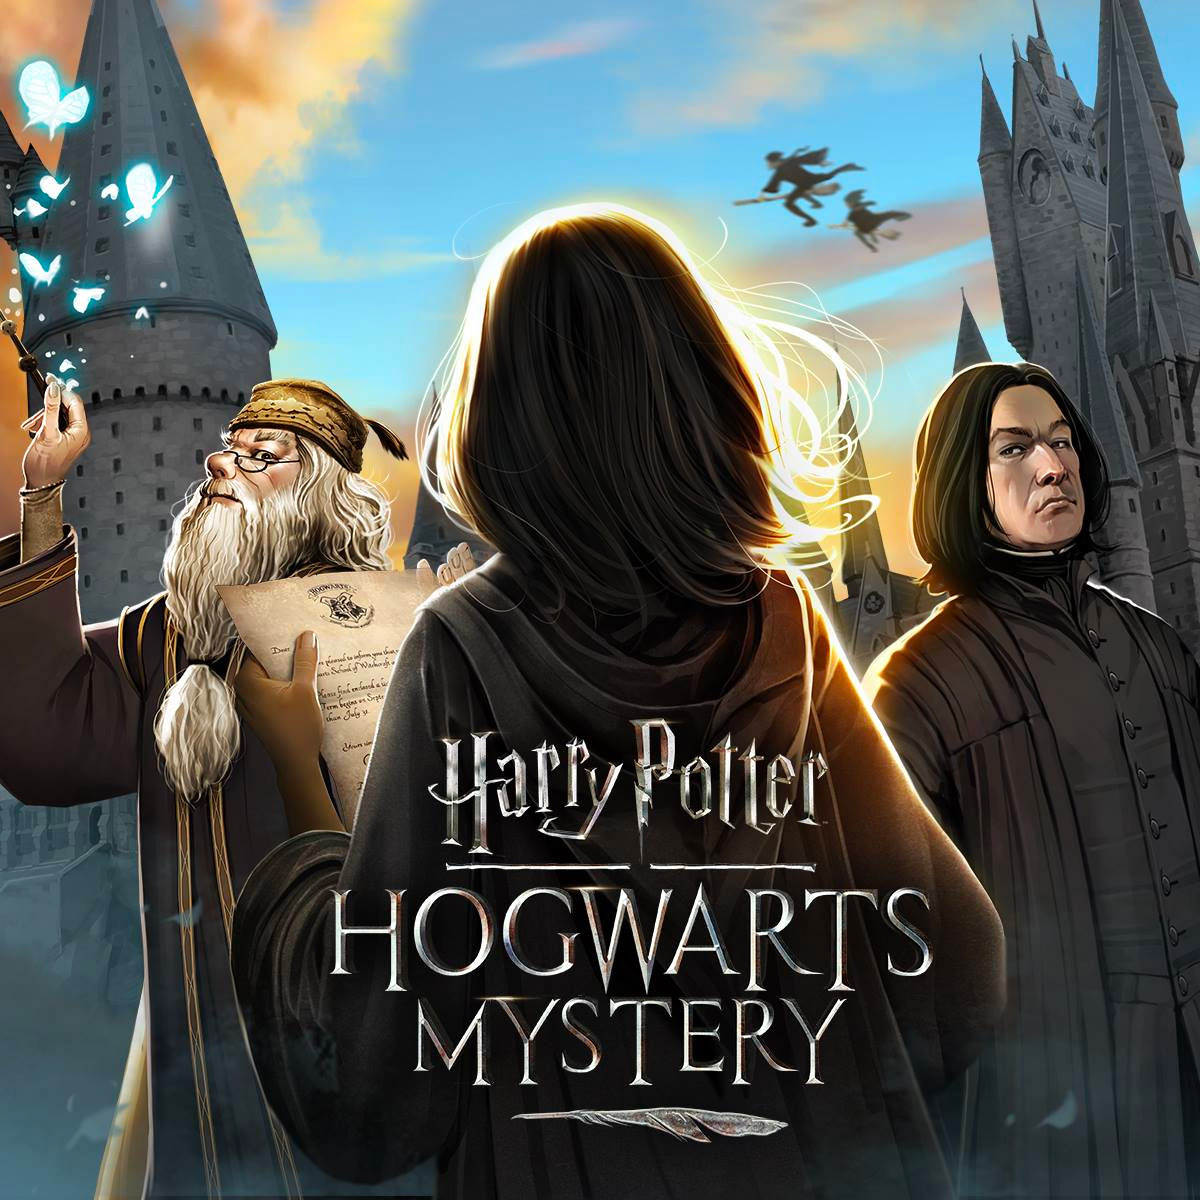 'Harry Potter: Hogwarts Mystery' promotional artwork